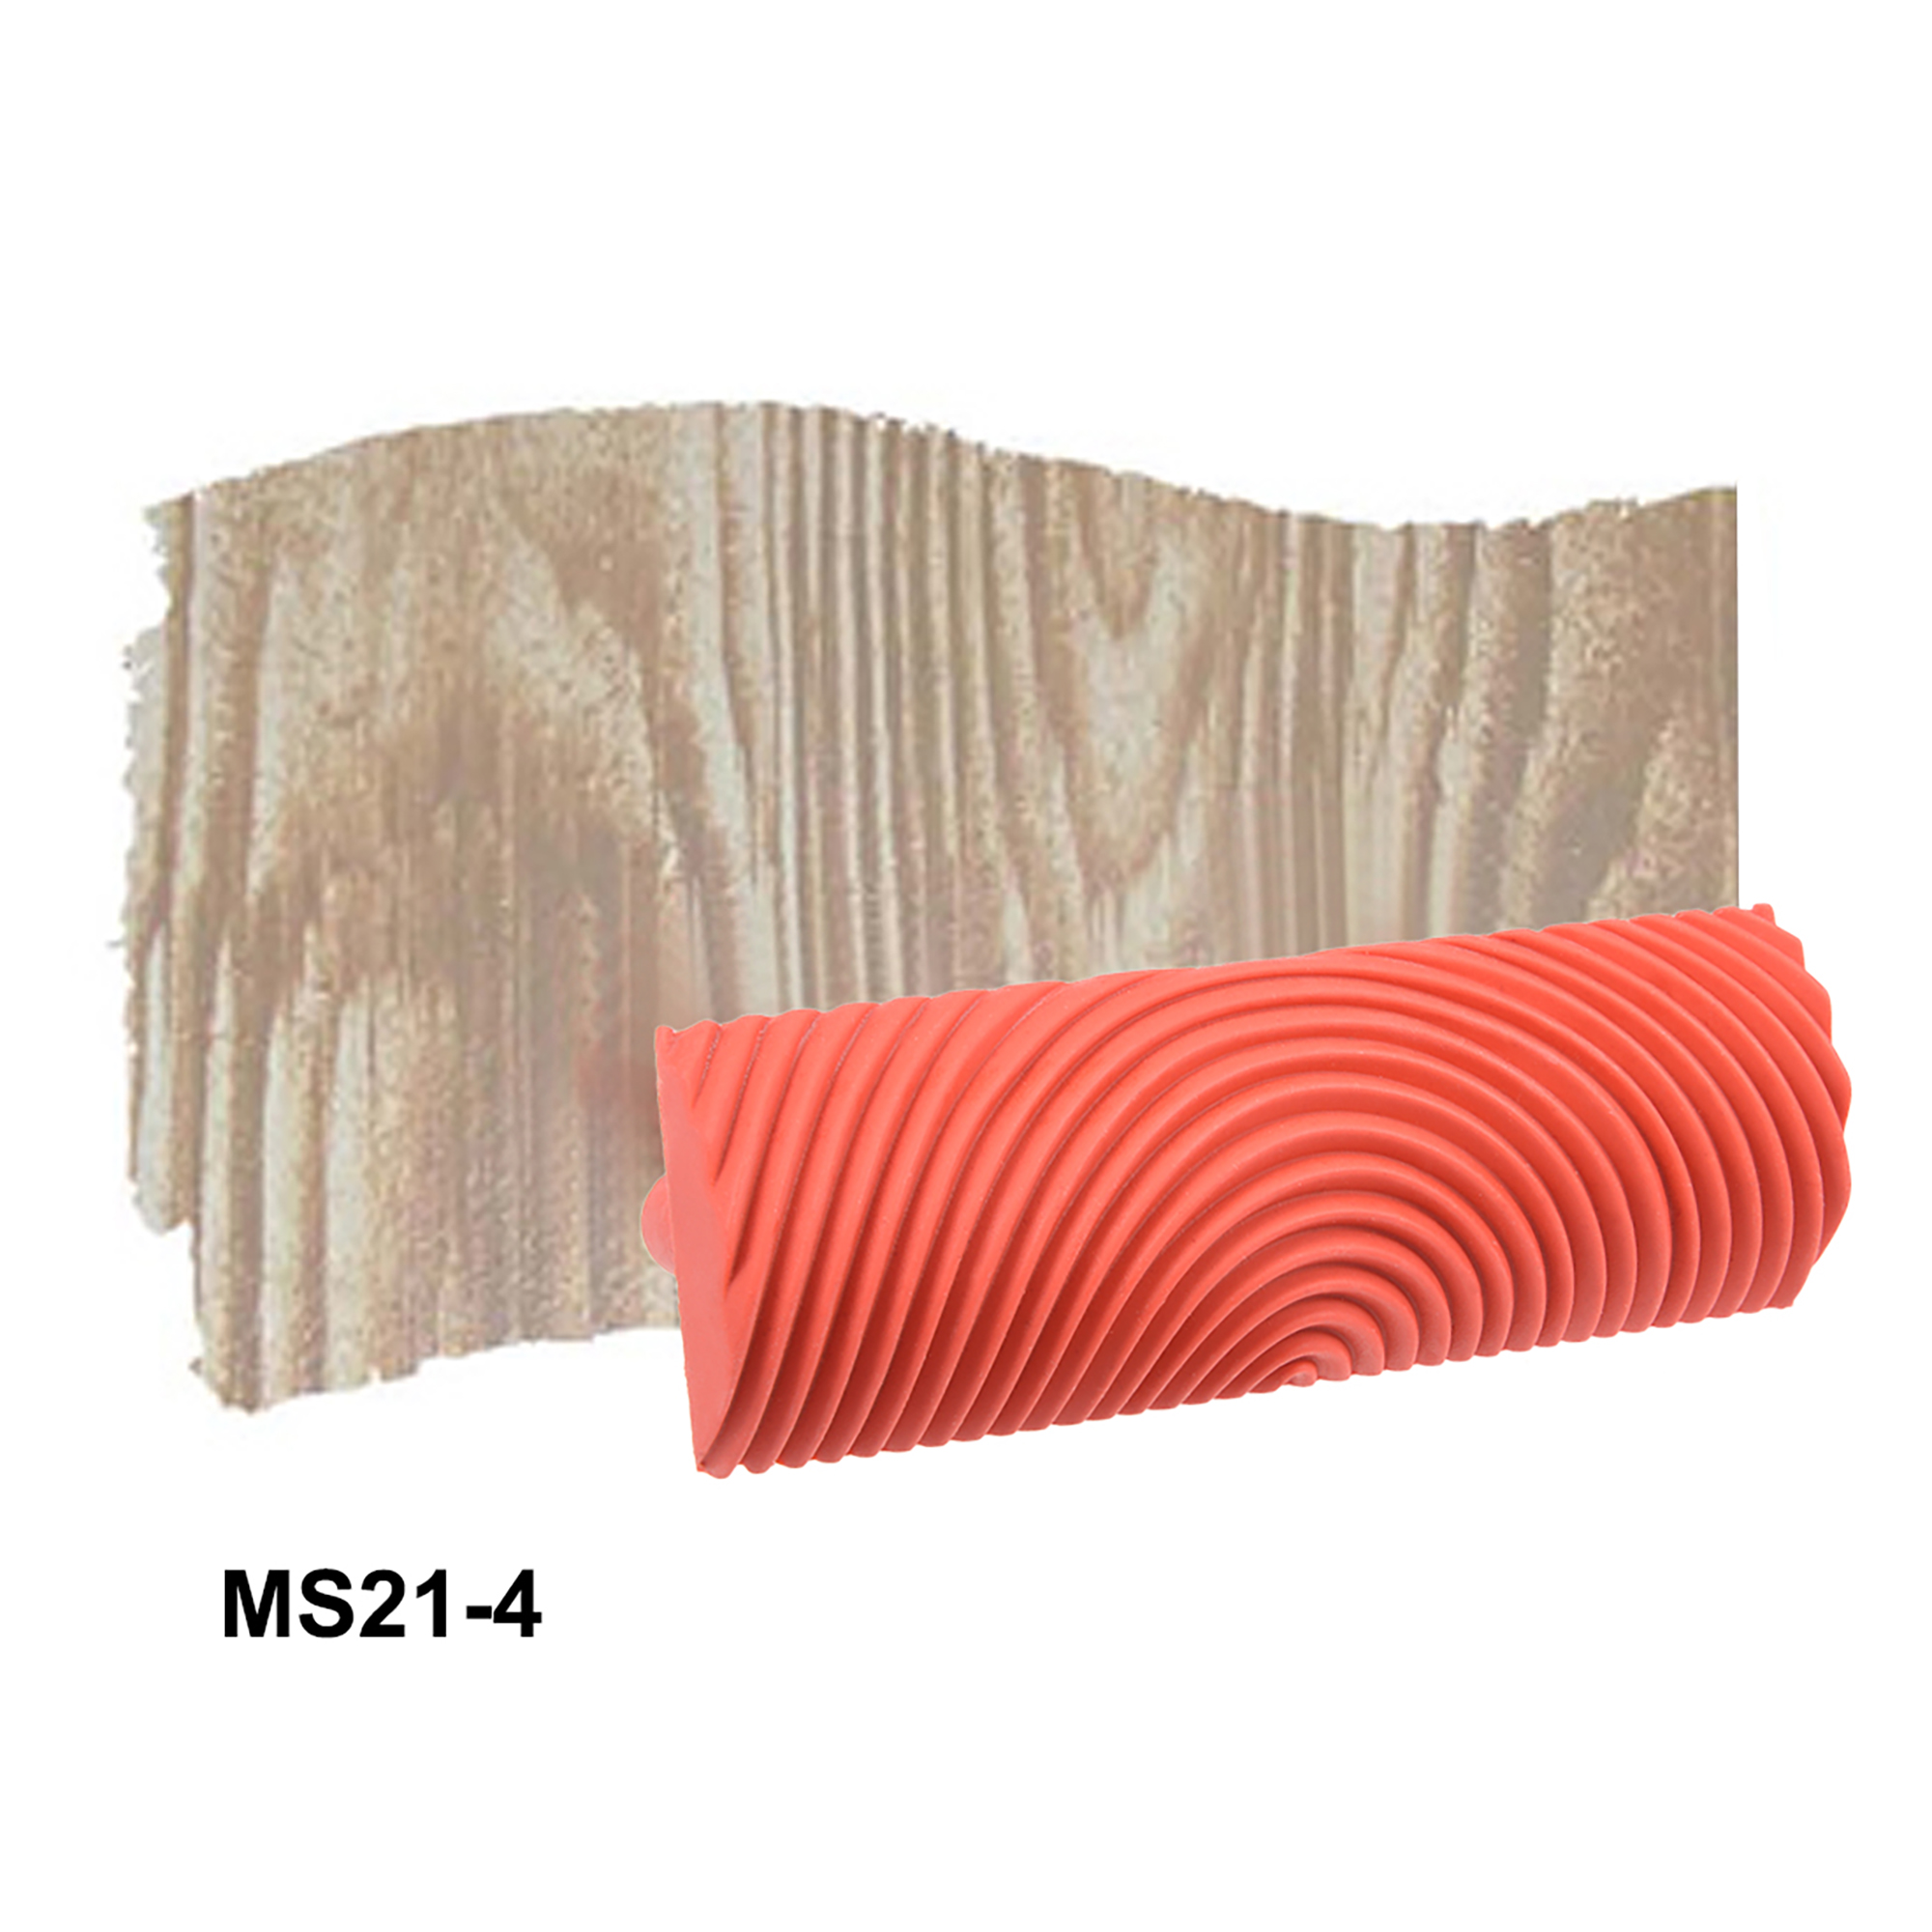 Wood Grain Tool 4 inch Empaistic Rubber Square Graining Pattern Stamp for Wall Decoration DIY Red 2pcs - image 2 of 5